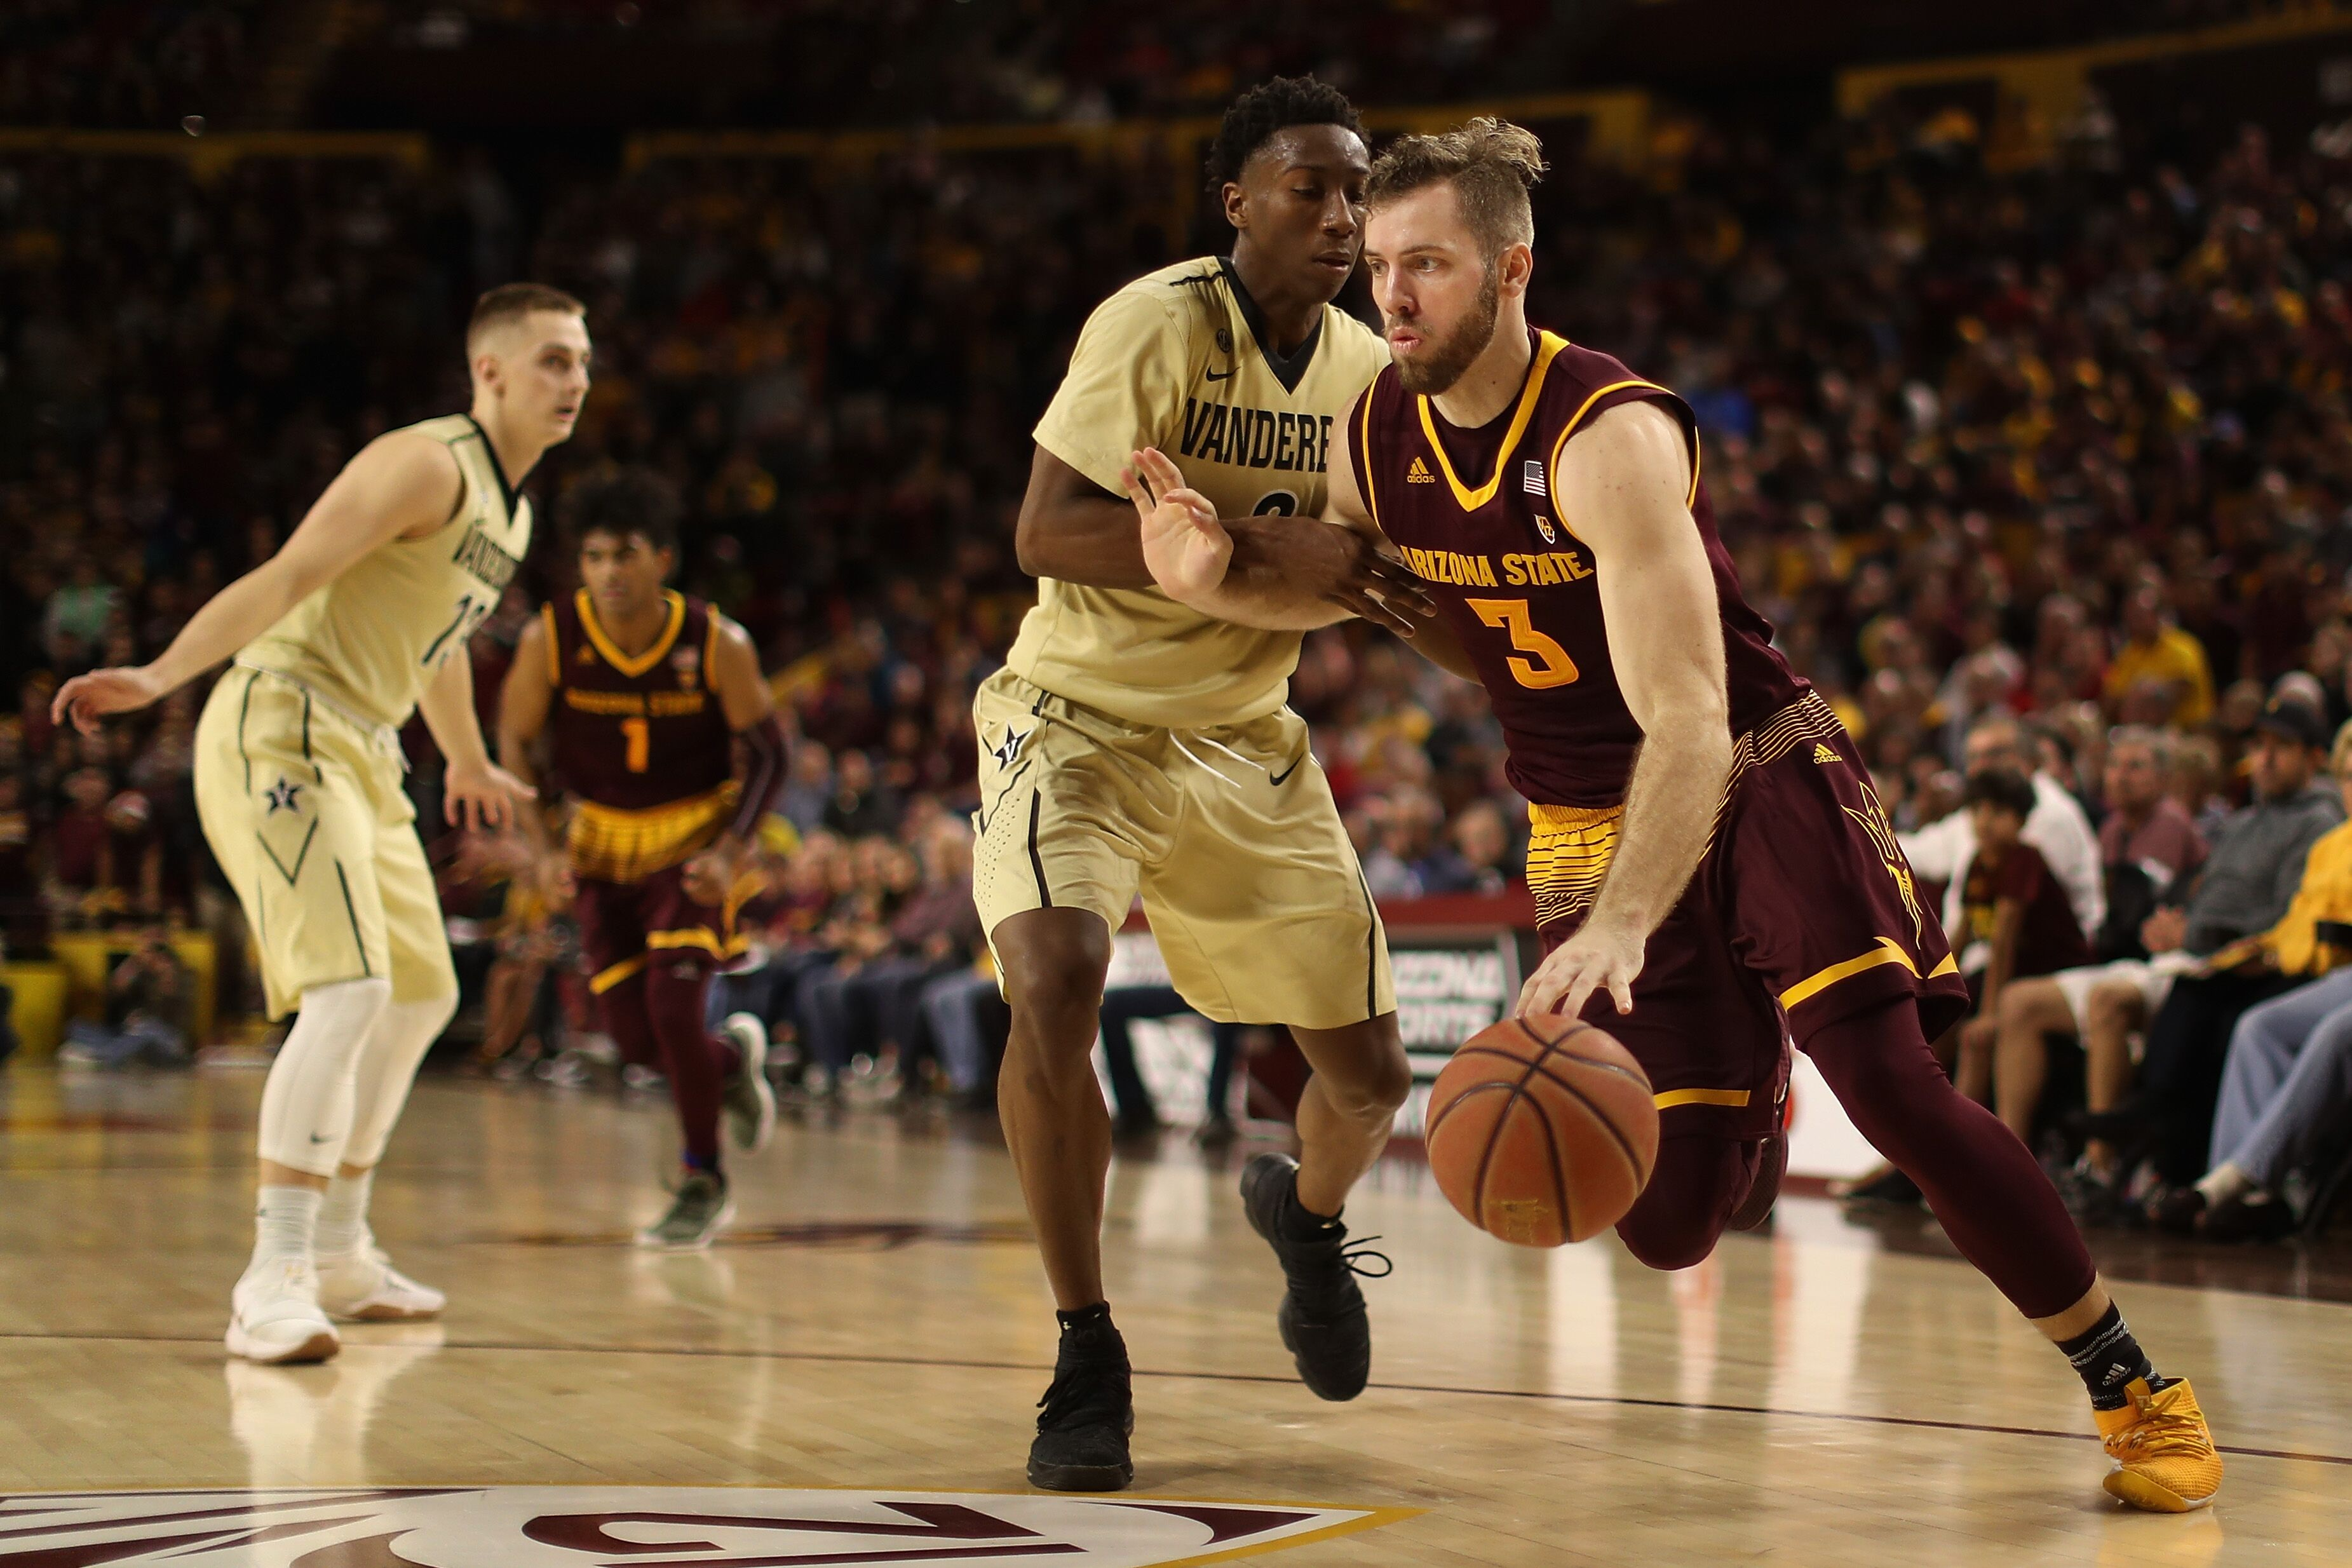 asu basketball: mickey mitchell is a spark getting it done all over